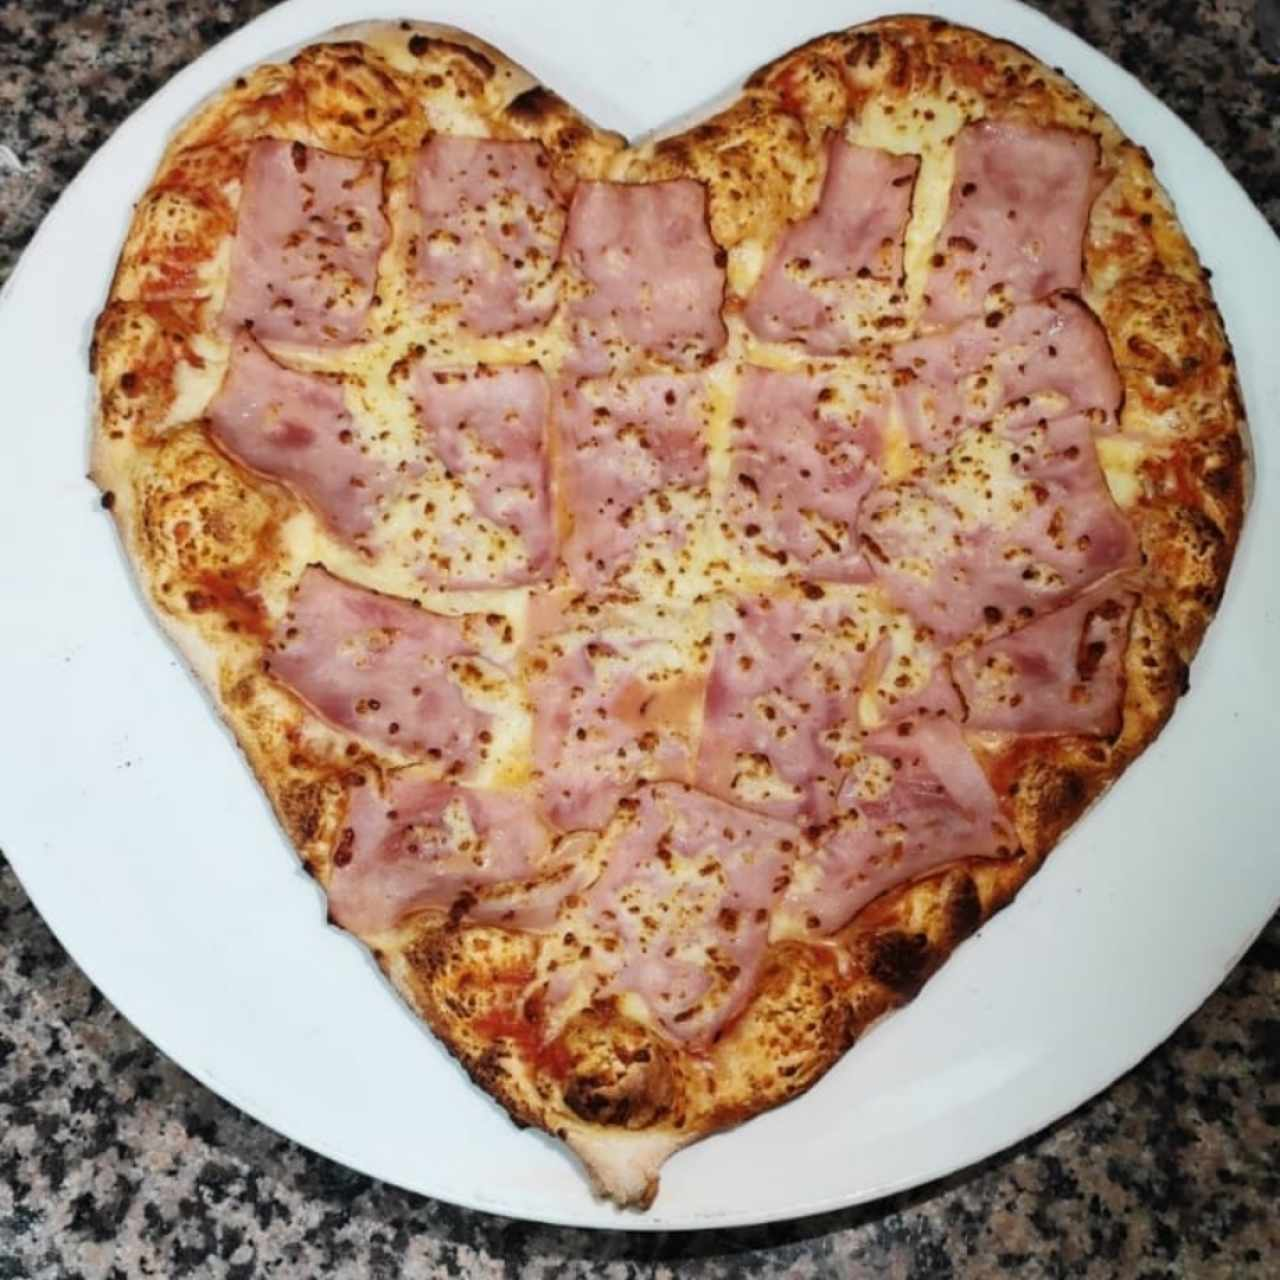 Pizza de Corazon con mozzarella y jamon